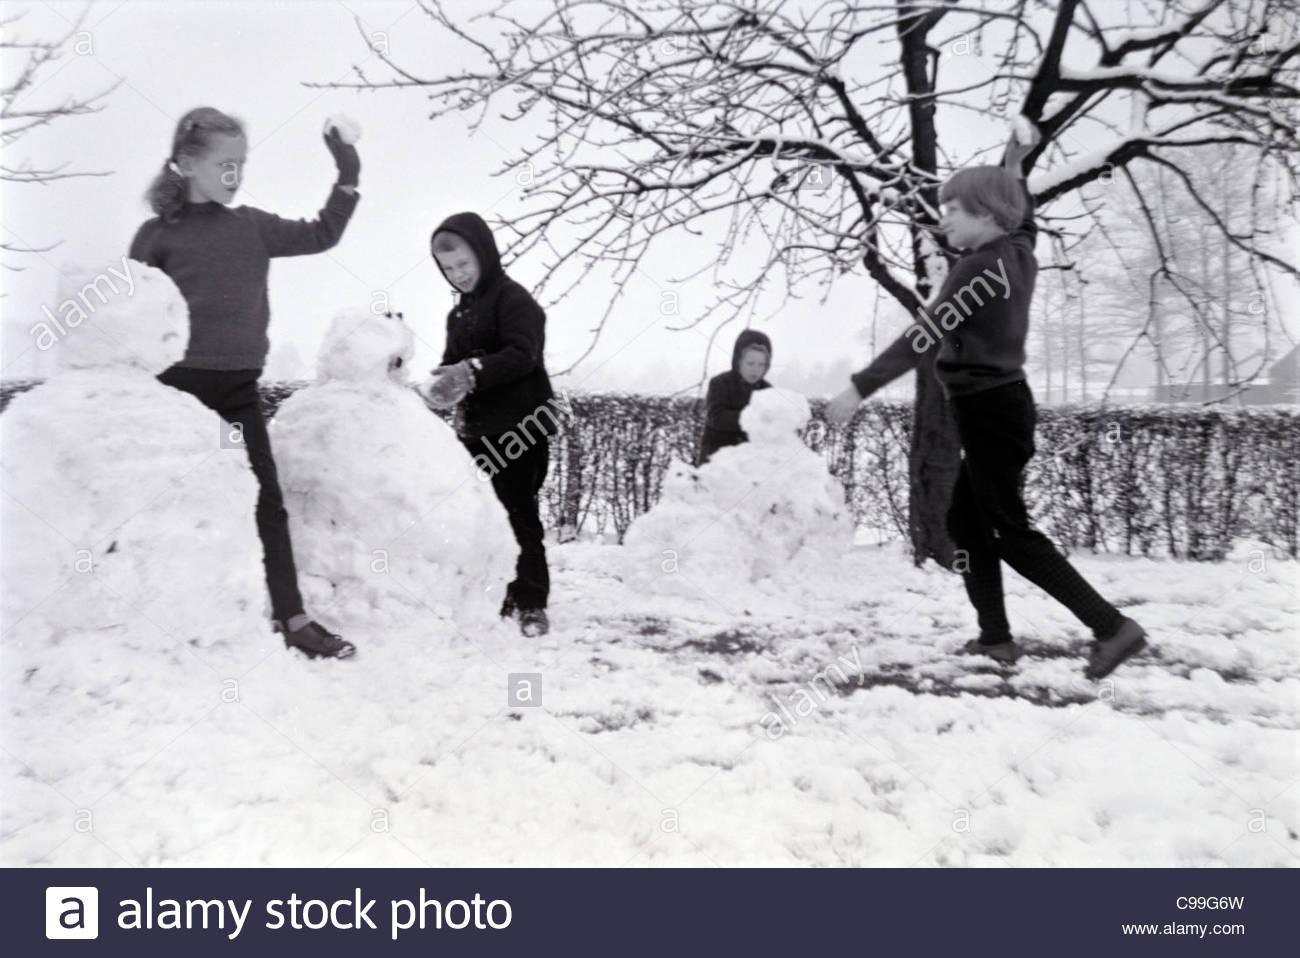 children playing in the snow 1960s - Stock Image